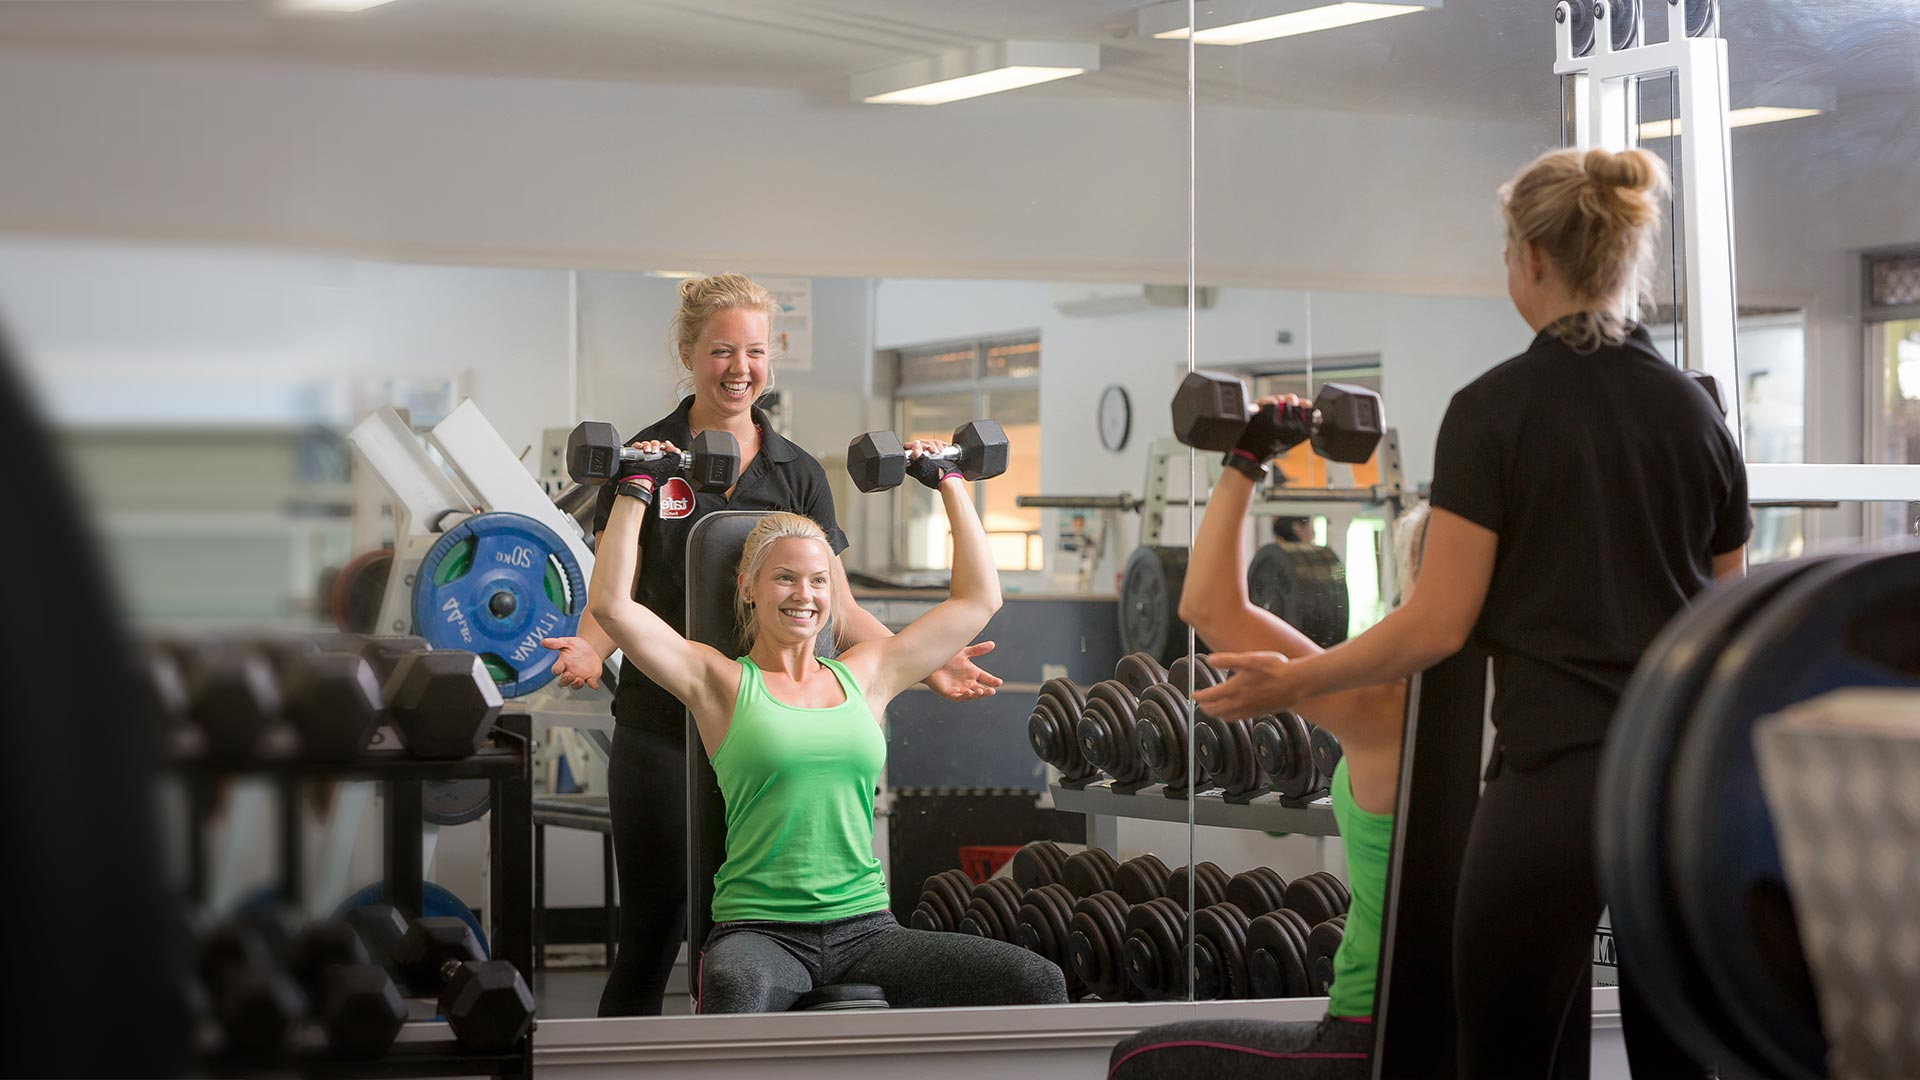 mooloolaba-facilities-gyms-and-sports-facilities-05.jpg